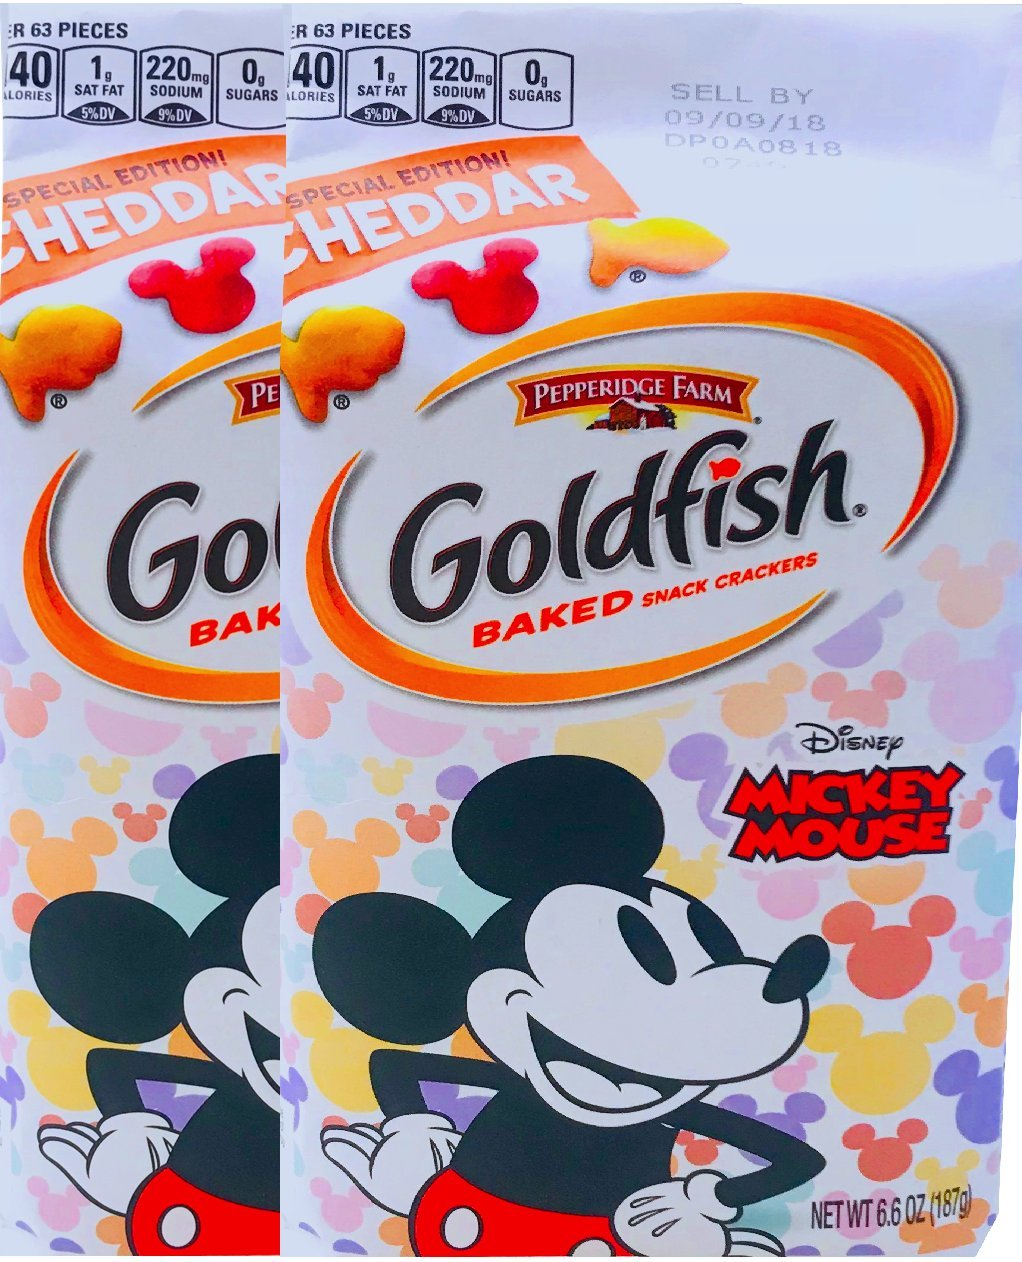 NEW Pepperidge Topics on TV Farm Goldfish Baked Micke Outstanding Cheddar Edition Special